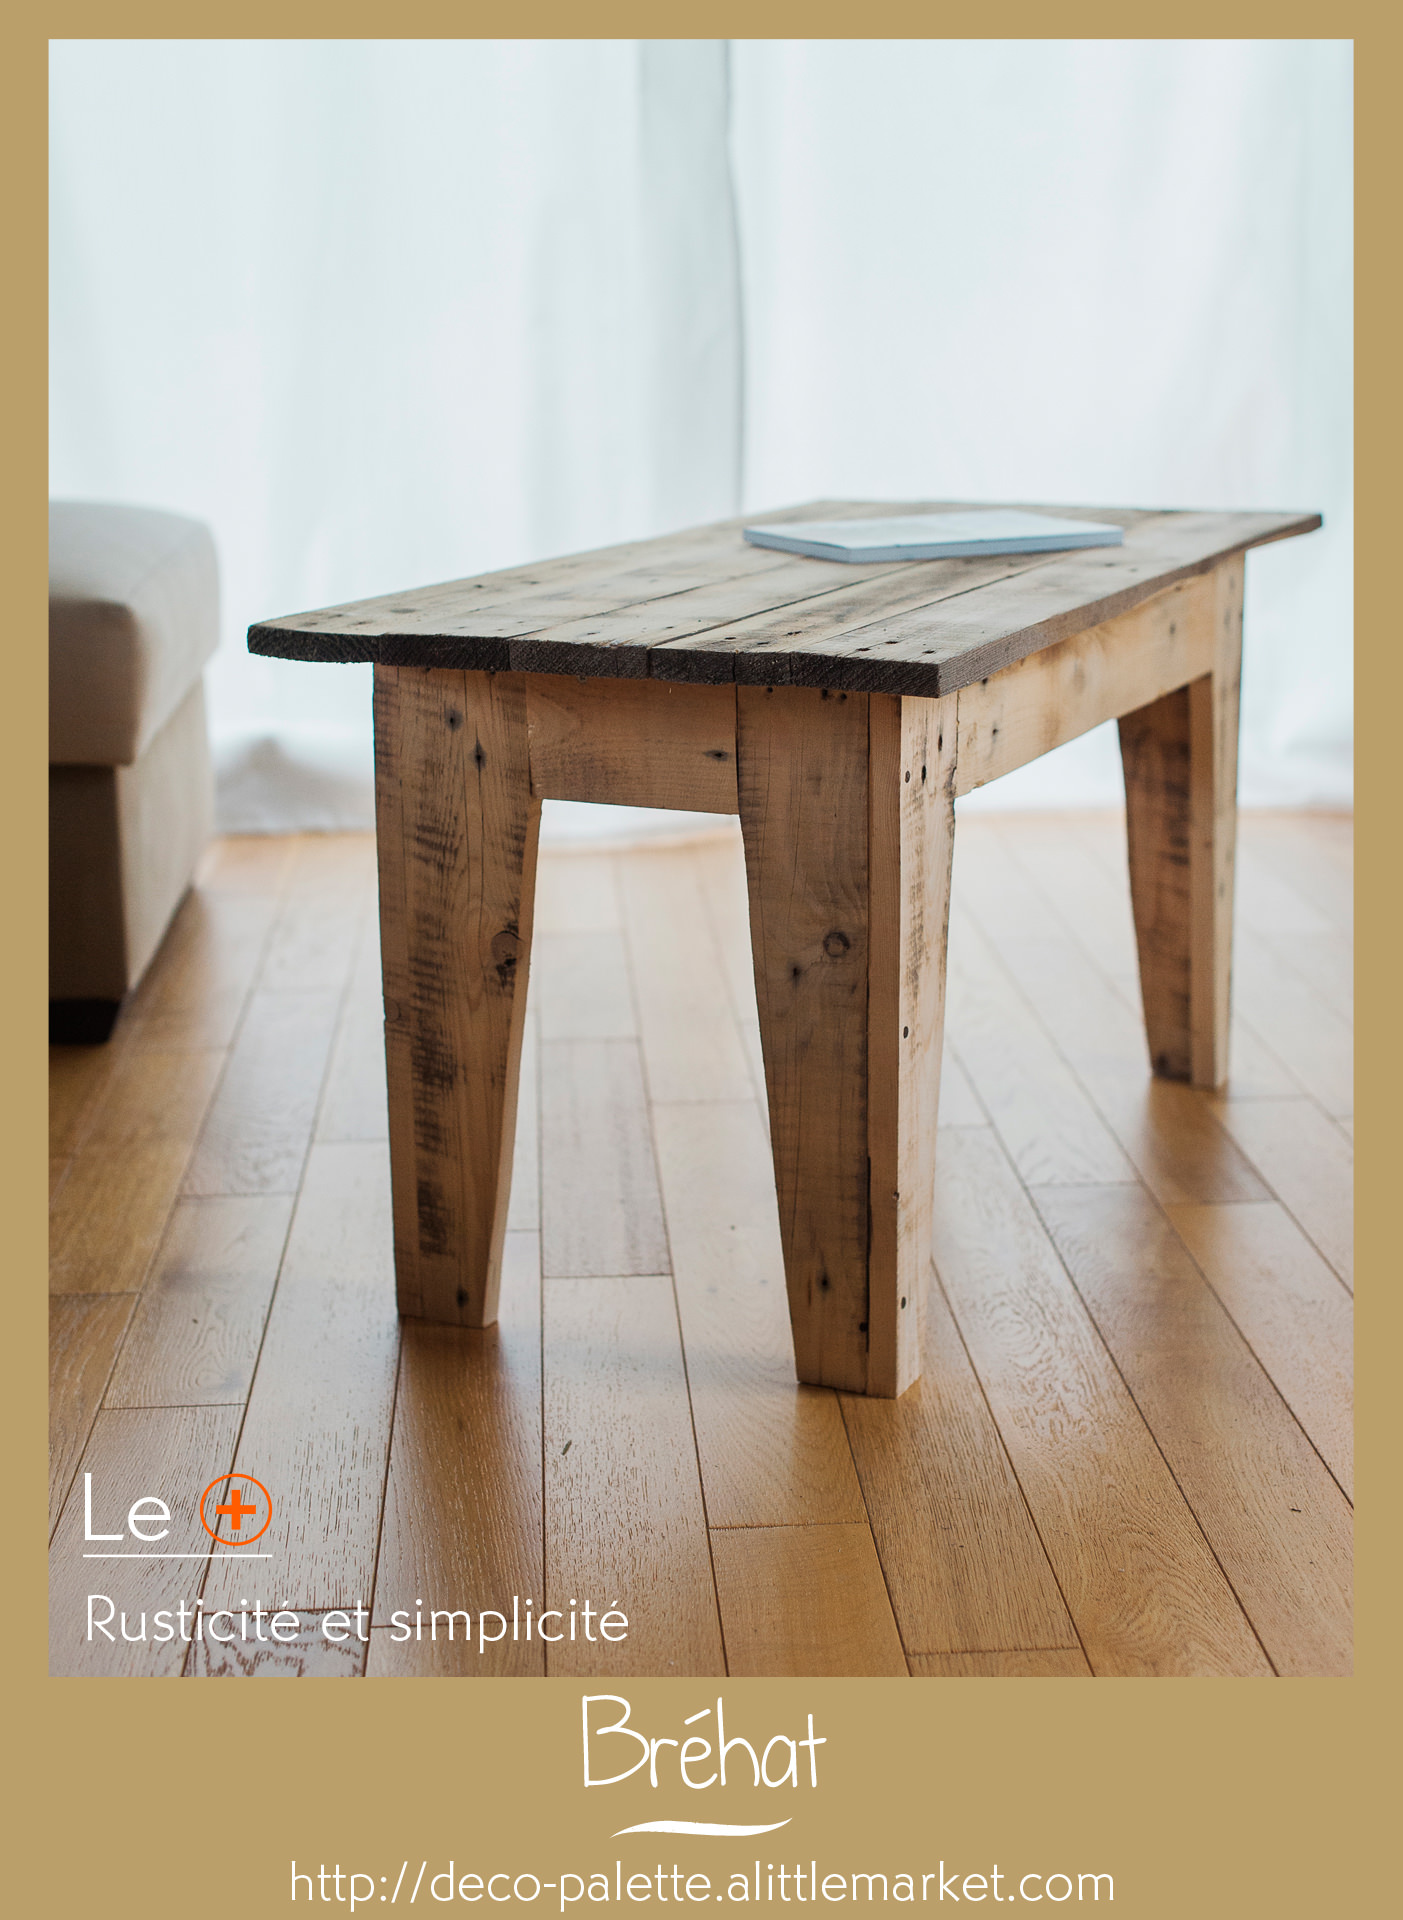 Table basse – Design rustique